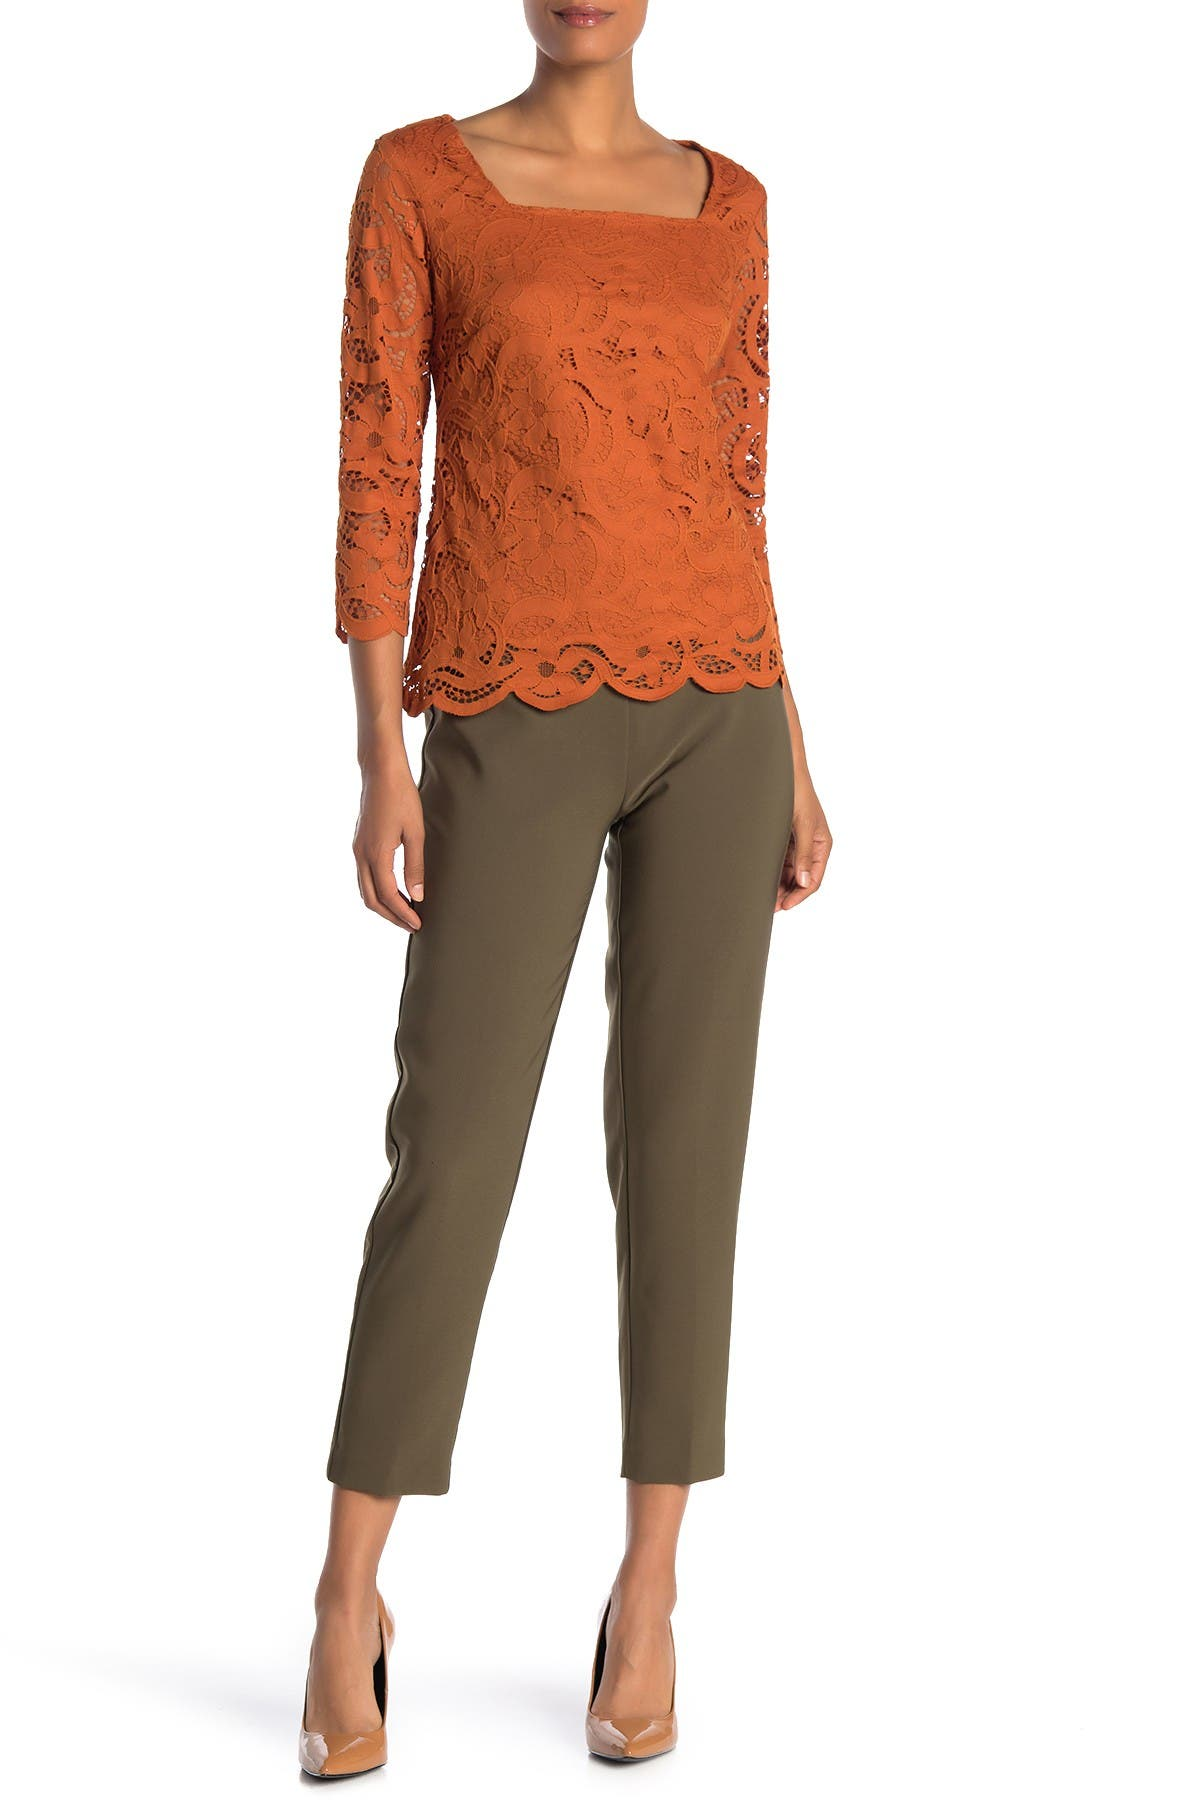 Image of NANETTE nanette lepore Coin Pocket Pull On Pants